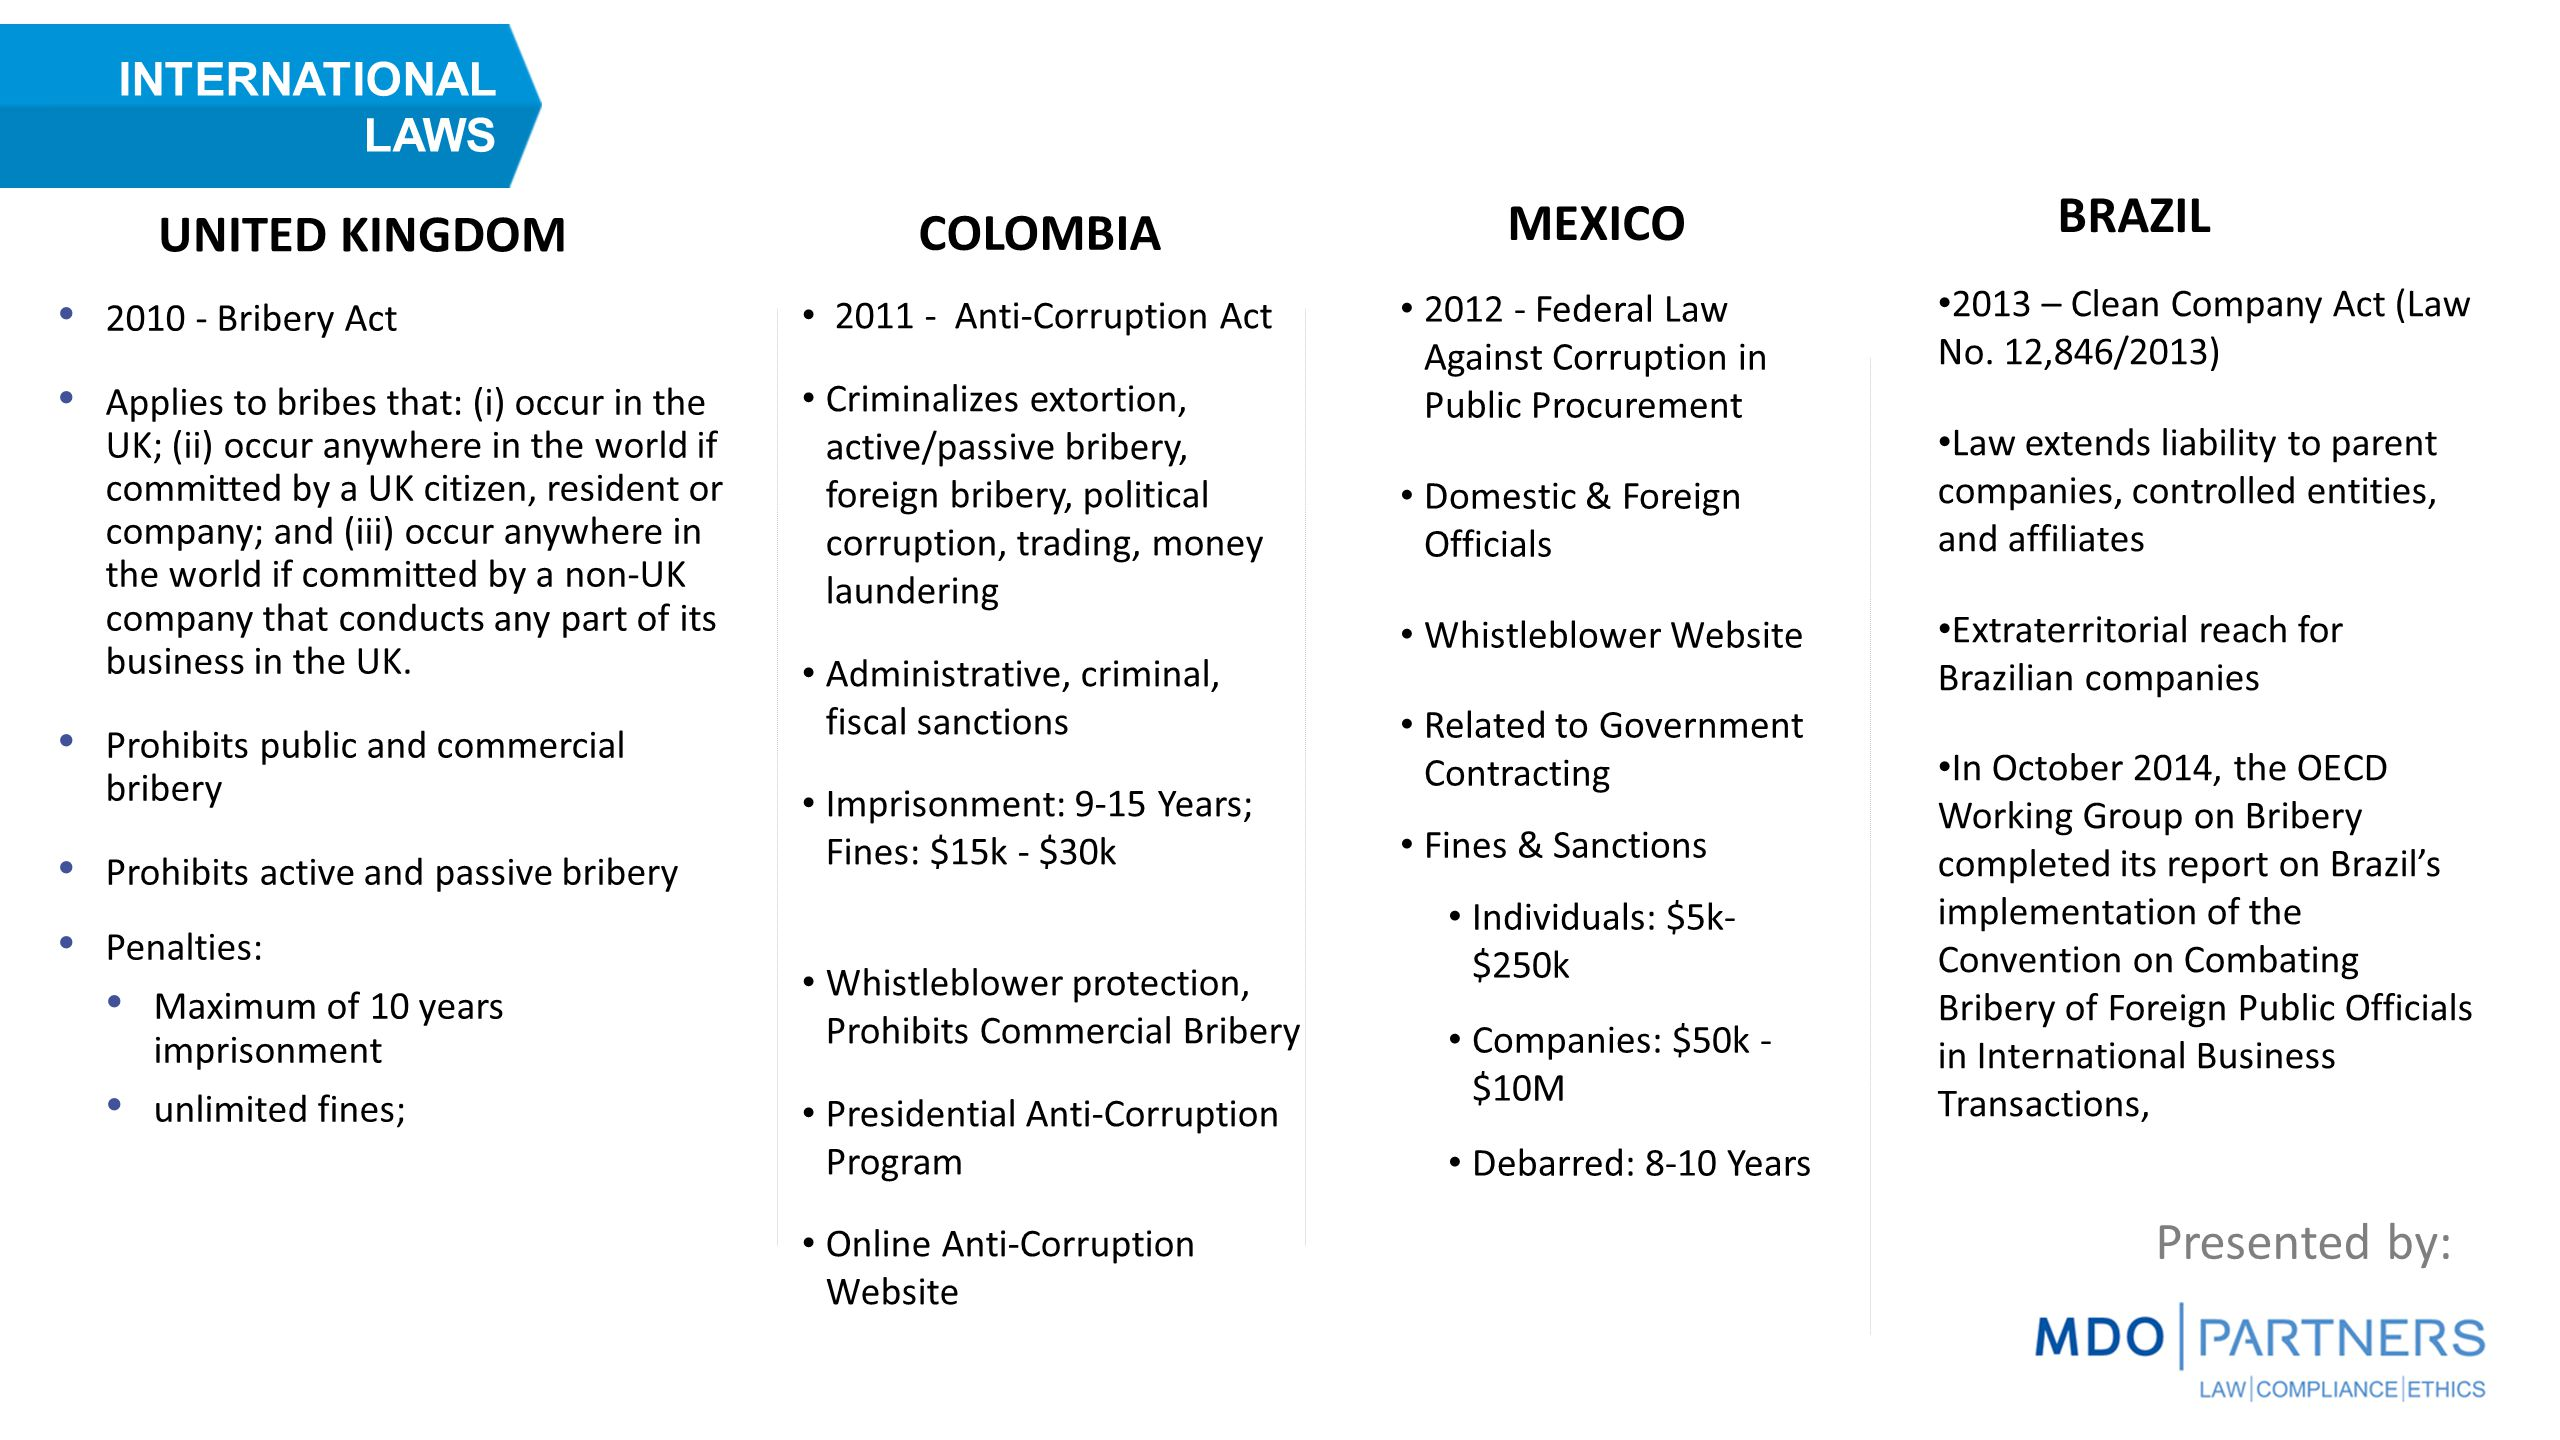 Presented by: BRAZIL COLOMBIA MEXICO 2012 - Federal Law Against Corruption in Public Procurement Domestic & Foreign Officials Whistleblower Website Related to Government Contracting Fines & Sanctions Individuals: $5k- $250k Companies: $50k - $10M Debarred: 8-10 Years 2011 - Anti-Corruption Act Criminalizes extortion, active/passive bribery, foreign bribery, political corruption, trading, money laundering Administrative, criminal, fiscal sanctions Imprisonment: 9-15 Years; Fines: $15k - $30k Whistleblower protection, Prohibits Commercial Bribery Presidential Anti-Corruption Program Online Anti-Corruption Website 2013 – Clean Company Act (Law No.